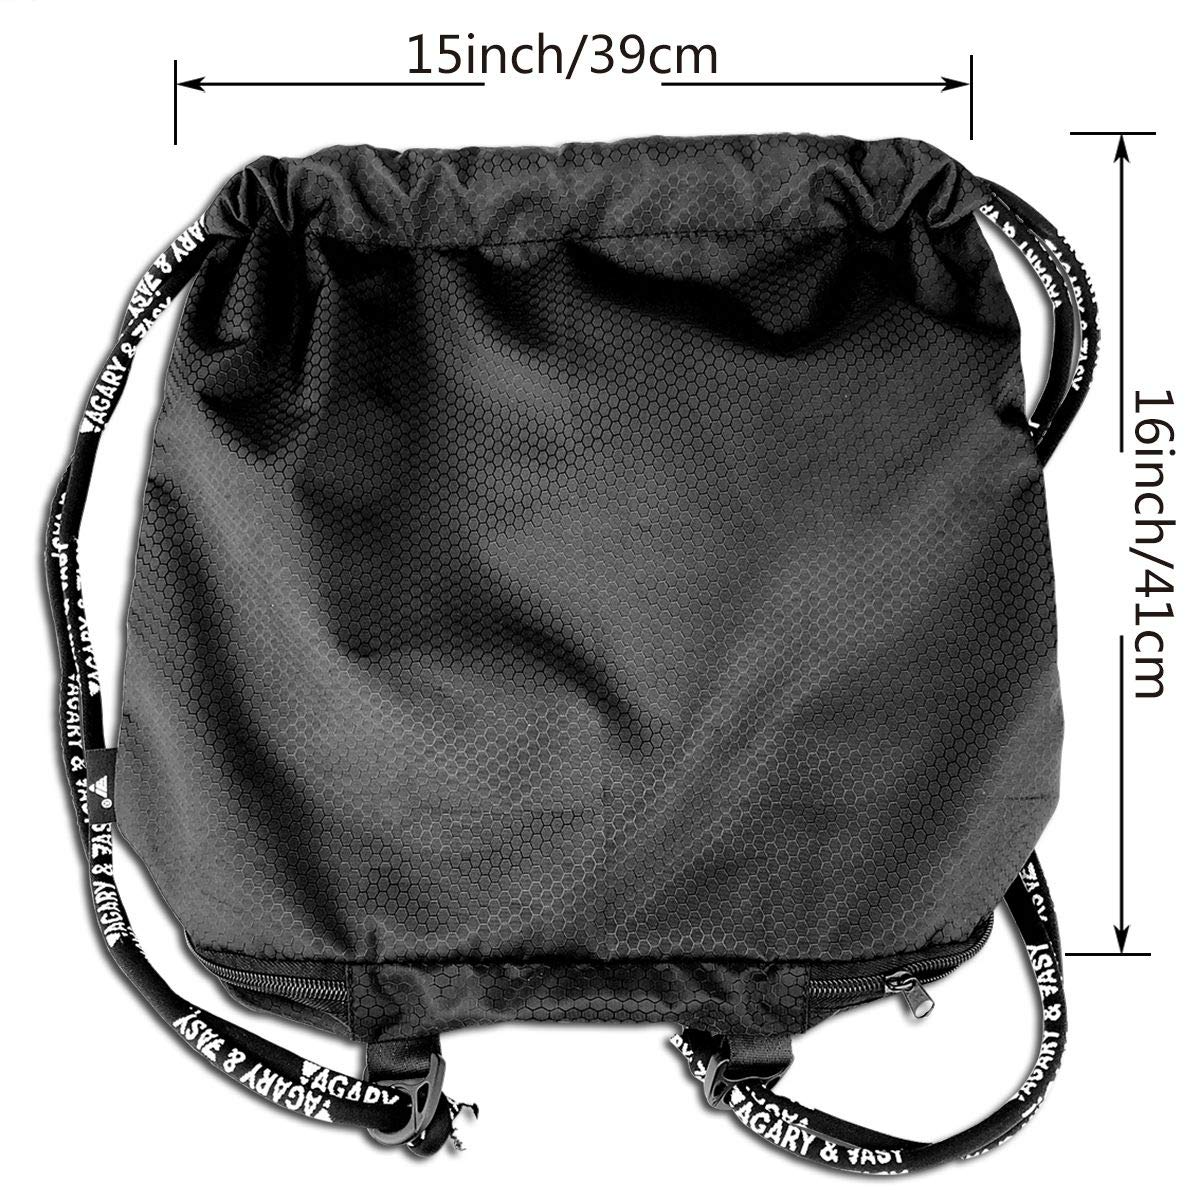 Fish Bowl Blues N Greens Drawstring Backpack Sports Athletic Gym Cinch Sack String Storage Bags for Hiking Travel Beach